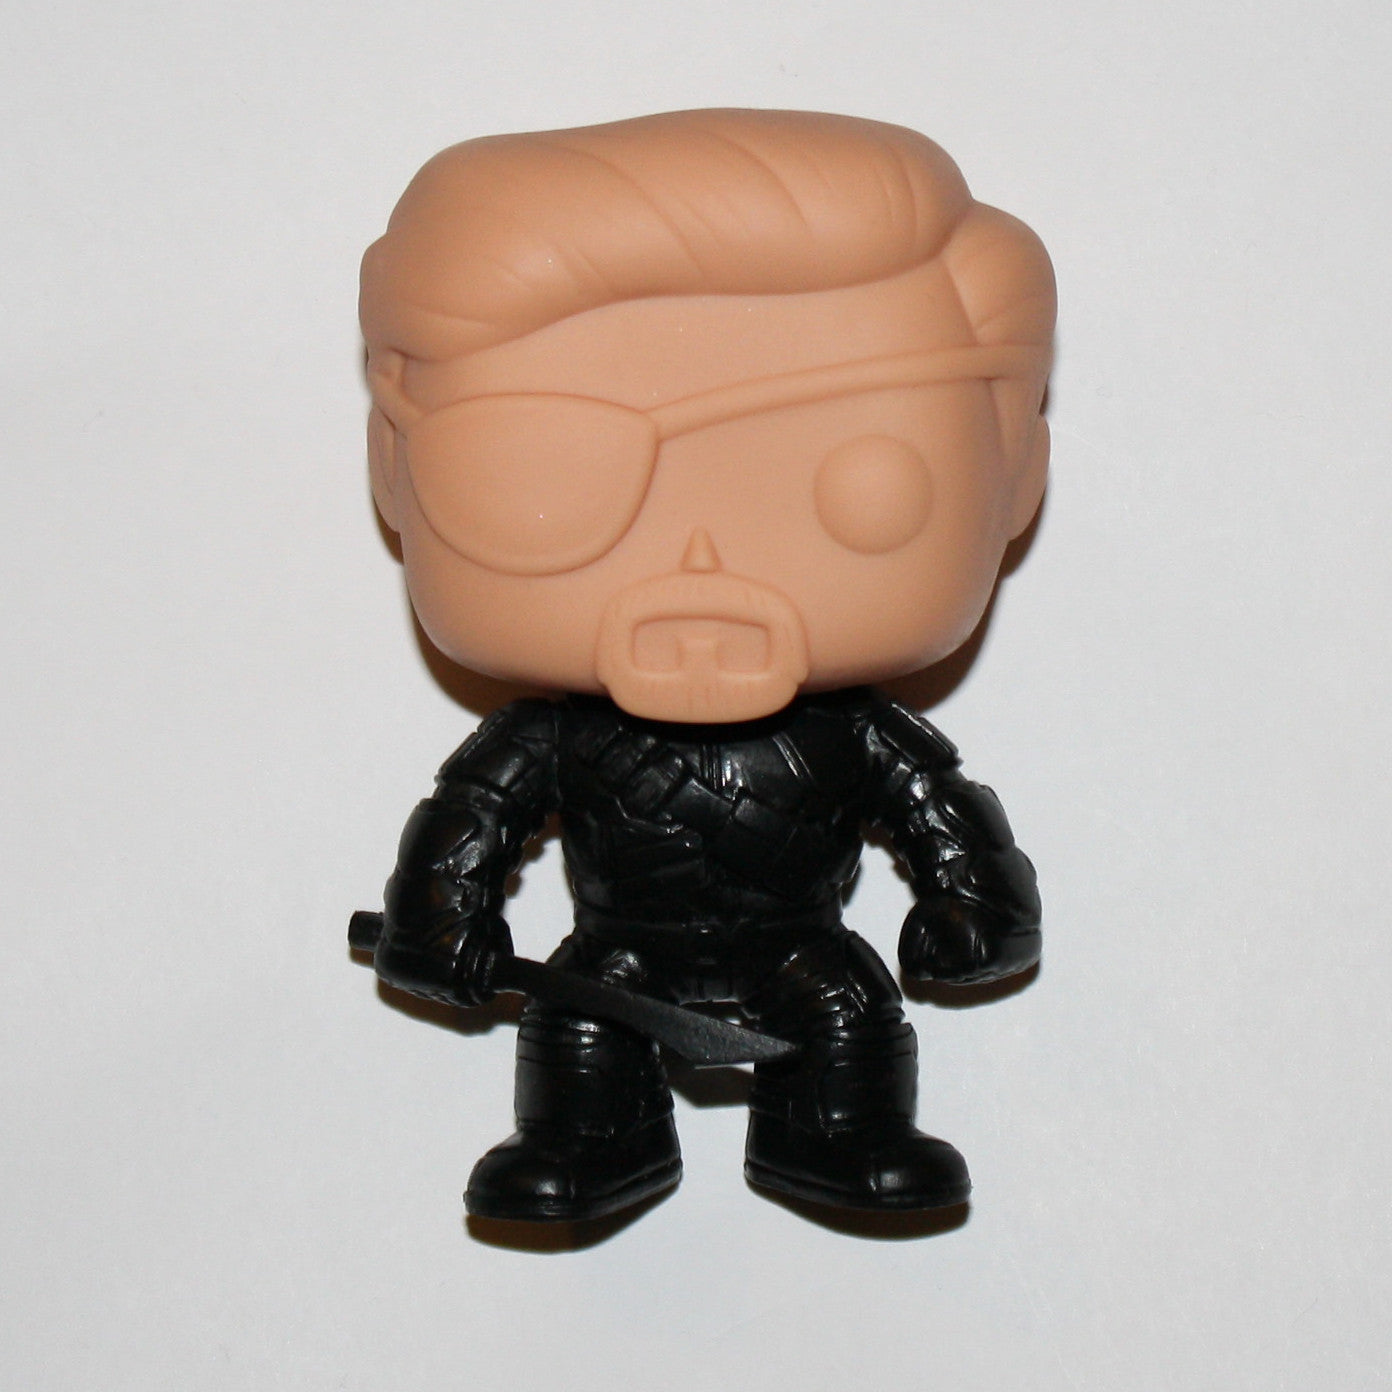 Deathstroke Unmasked [Flash TV] Proto - Fugitive Toys